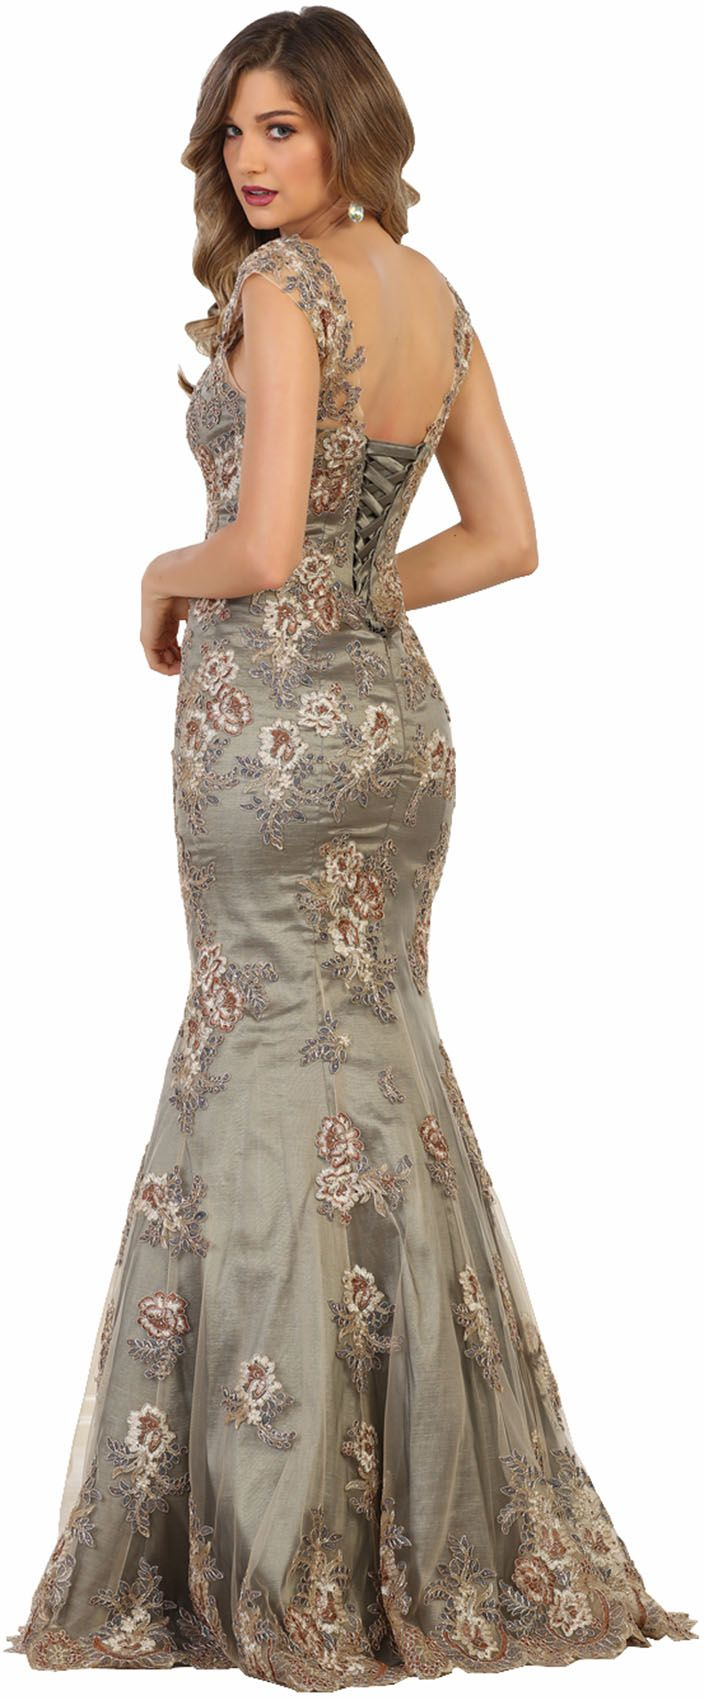 May Queen Corset Back Prom Evening Gown Walmart Com Evening Gowns Formal Dress Shops Formal Dresses [ 1700 x 704 Pixel ]